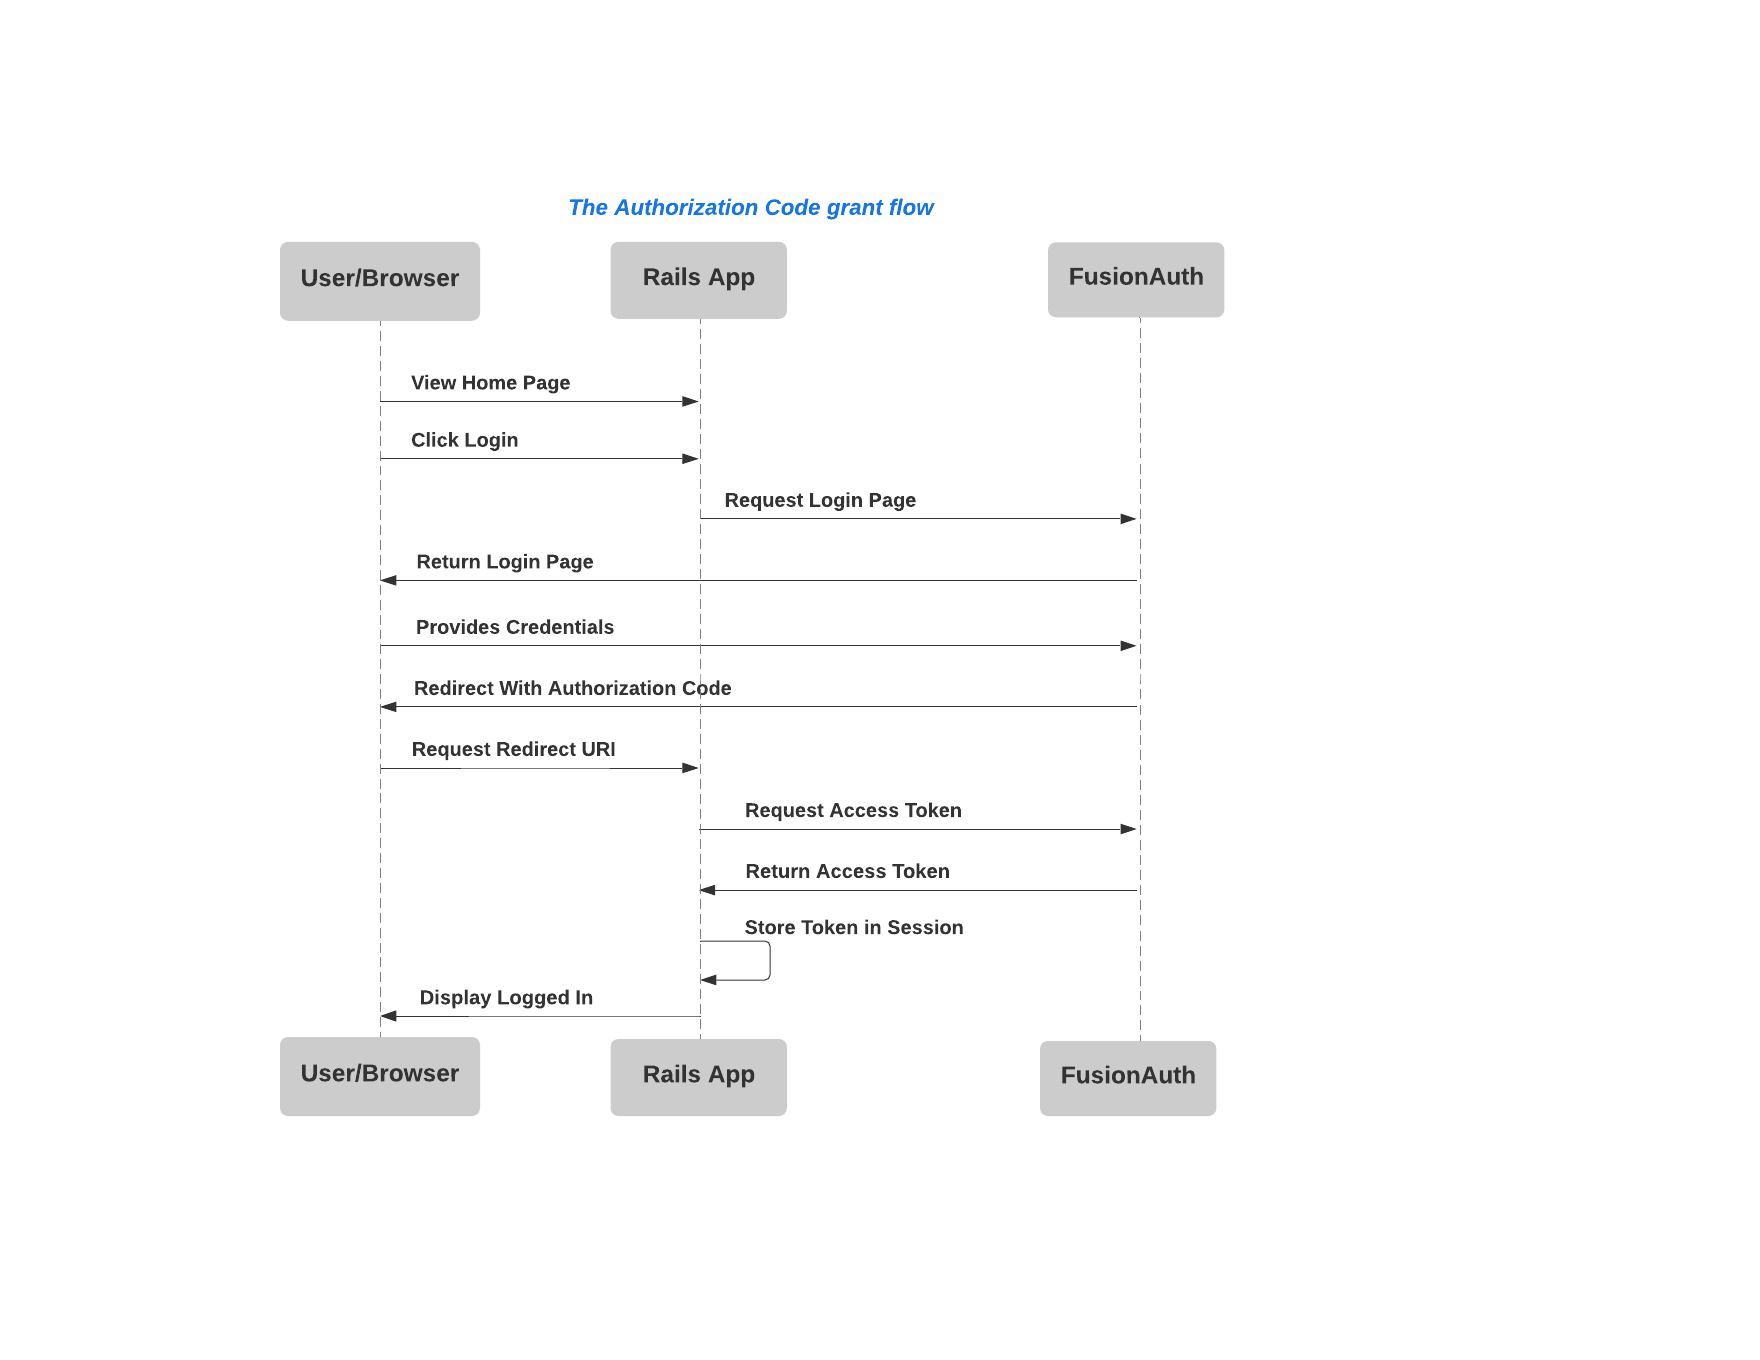 A sequence diagram illustrating the authentication code grant flow.